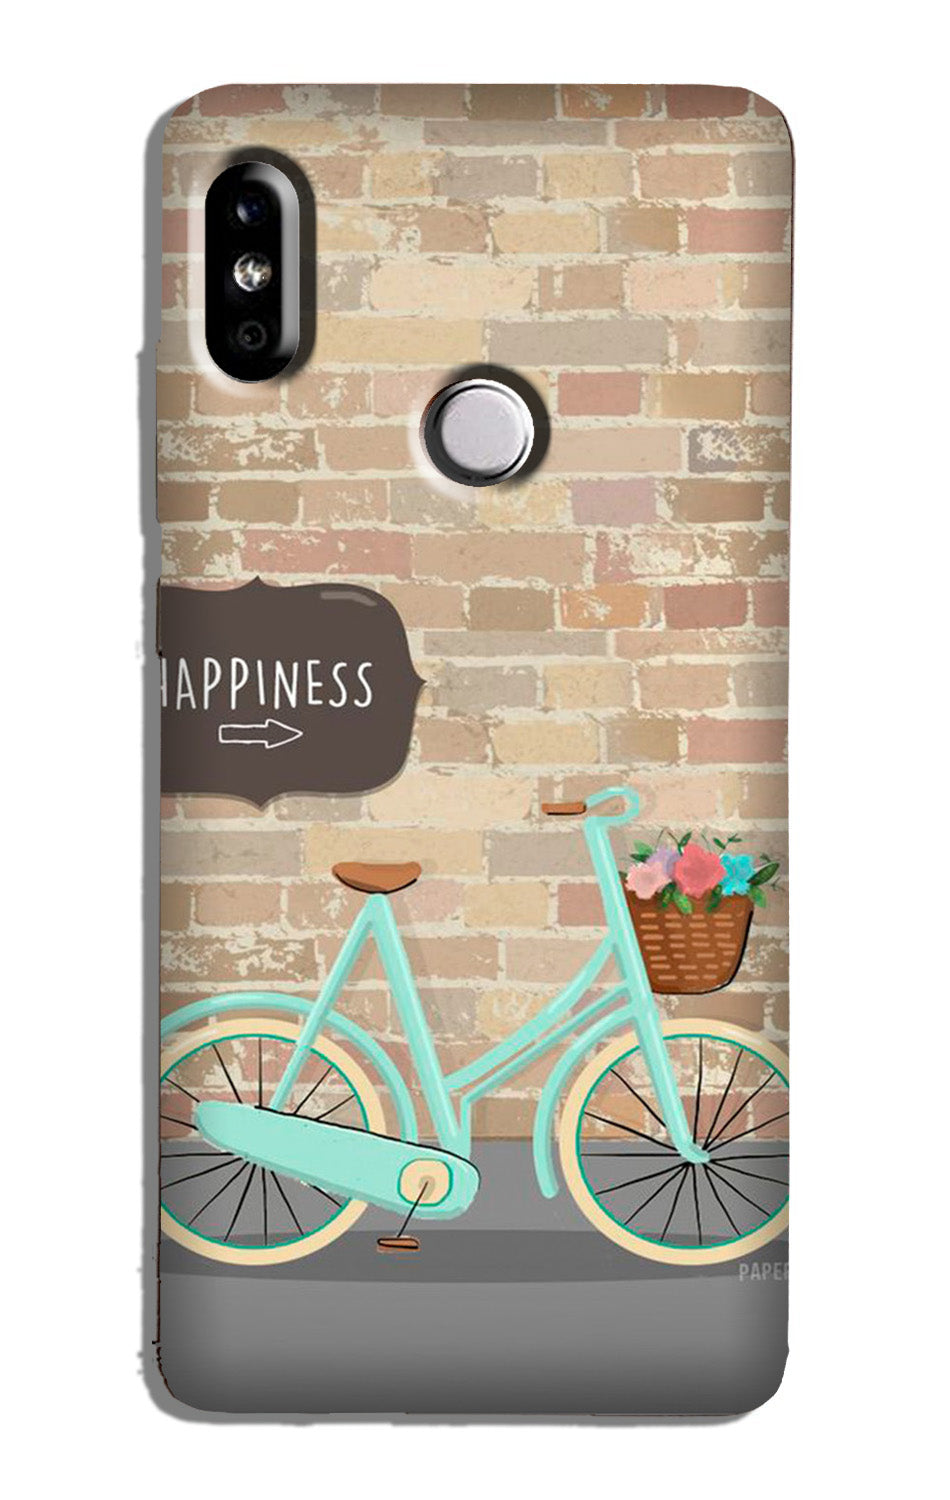 Happiness Case for Redmi Y2